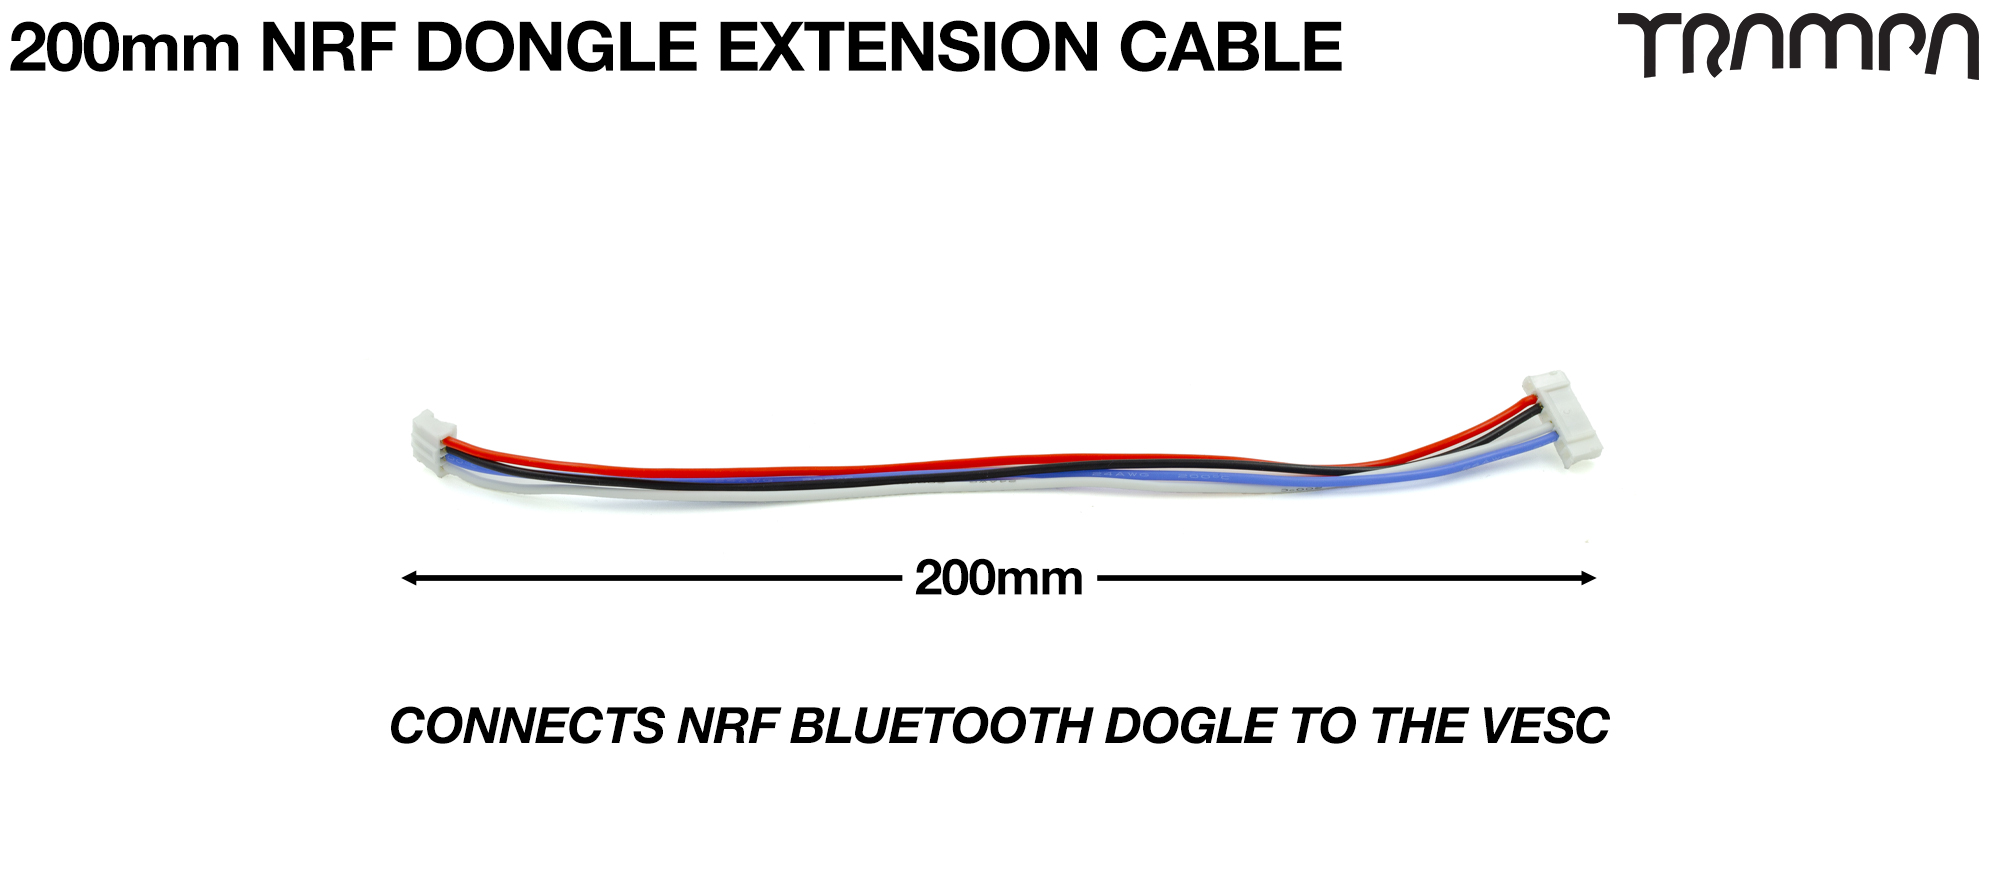 Please send 200mm of VESC Connect Dongle Cable